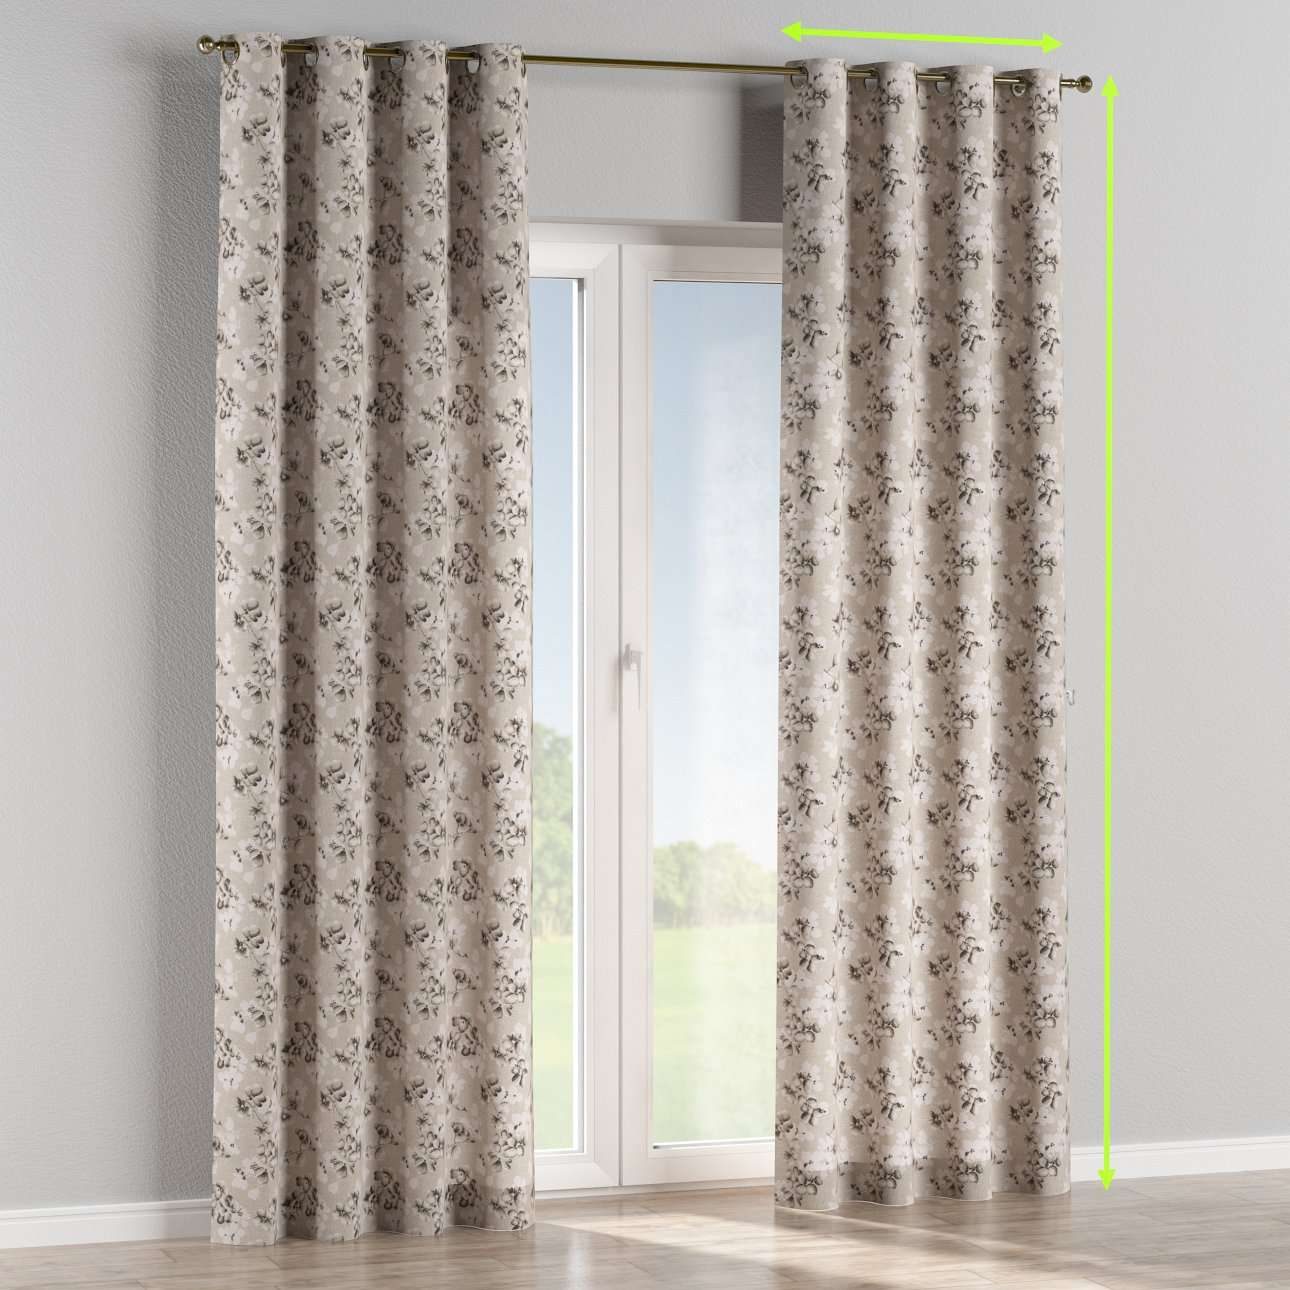 Eyelet curtains in collection Rustica, fabric: 138-14